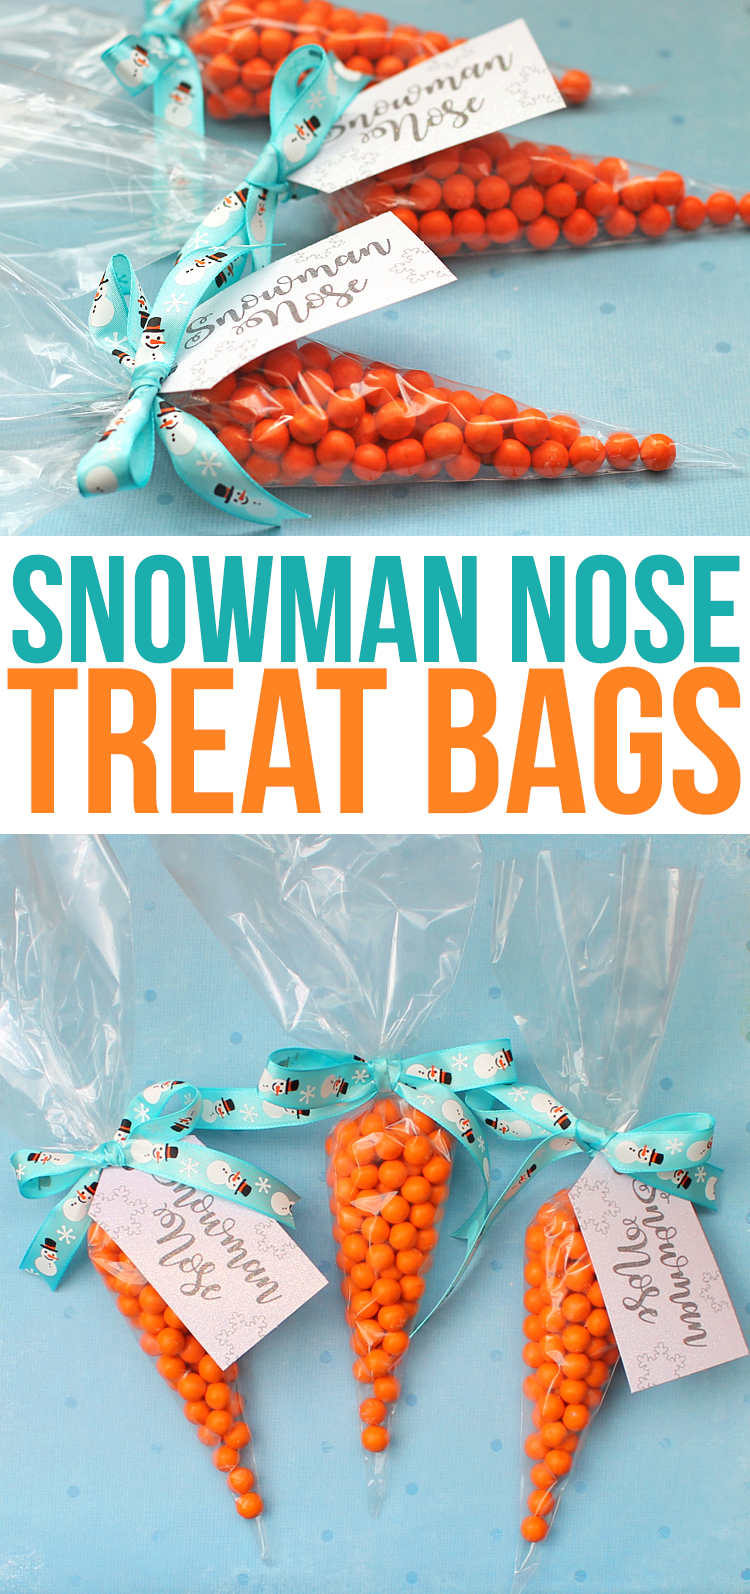 Snowman Nose candy treat bags are a simpe and cute punny Christmas gift idea perfect for giving to children at Christmas. I'm making these for my kids class party! #christmasgiftideas #christmas #snowman